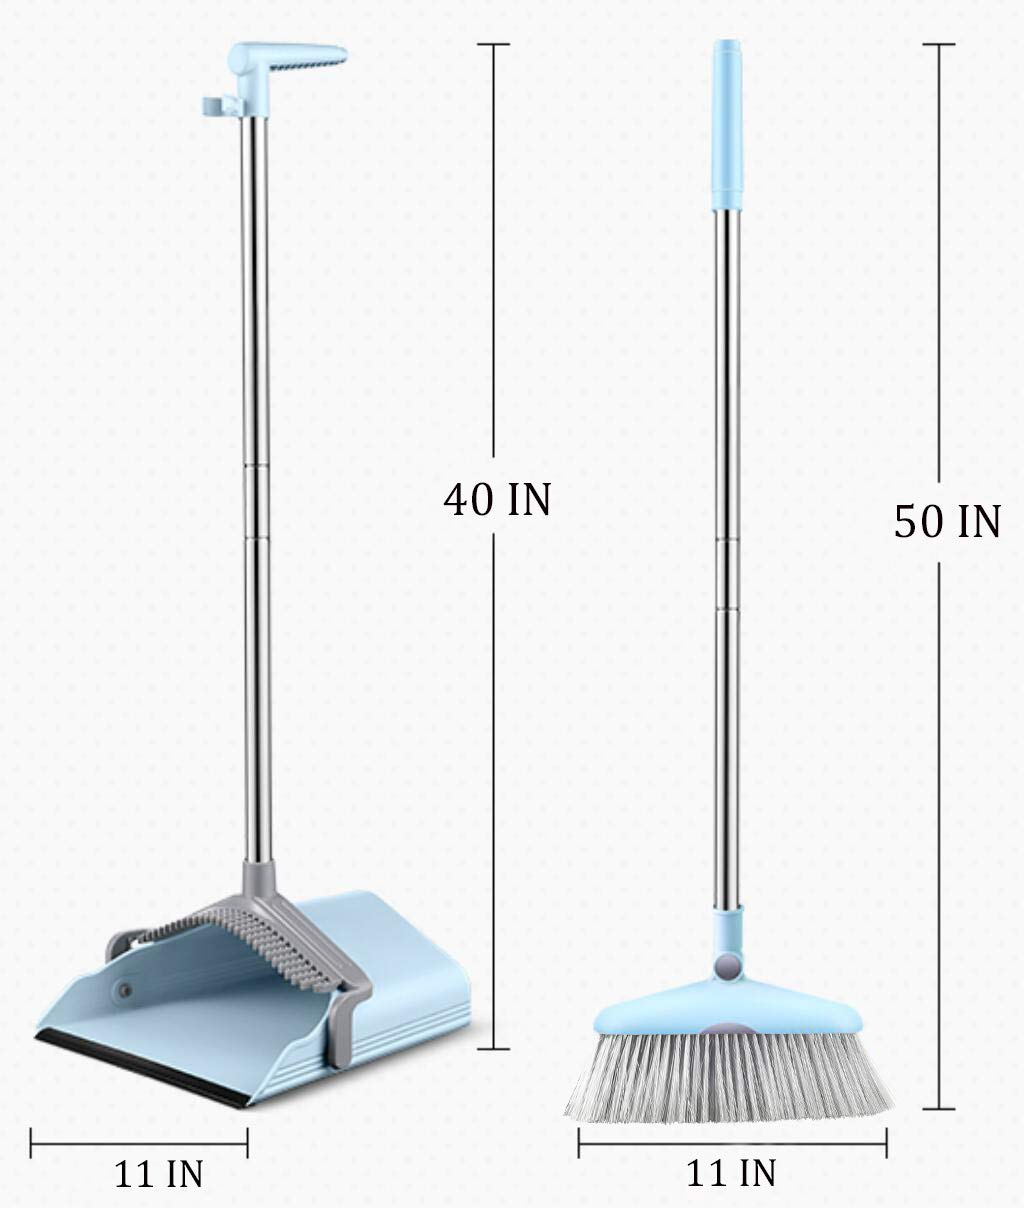 Dust Pan Sweep Set and Broom/Dustpan Cleans Broom Combo with Long Handle Broom Organizer for Home Kitchen Room Office Lobby Floor Use Upright Stand up Dustpan Broom Set by YOUSHANGJIA (Image #5)